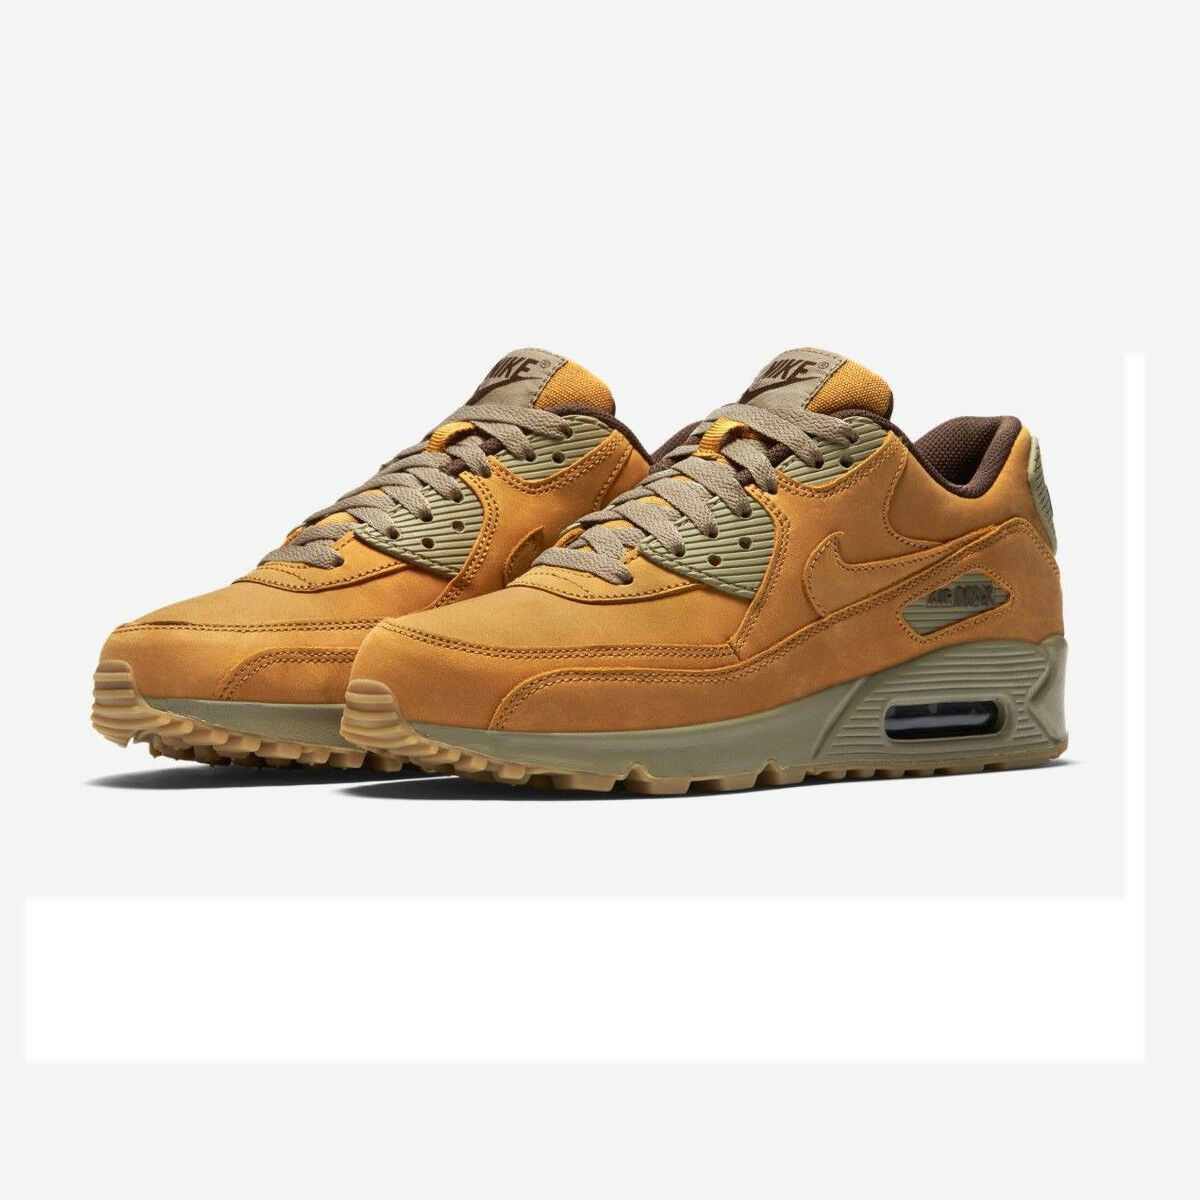 WOMENS ORIGINAL NIKE AIR MAX 90 WINTER WHEAT BRONZE TRAINERS TRAINERS TRAINERS SNEAKERS 880302700 4ee86f